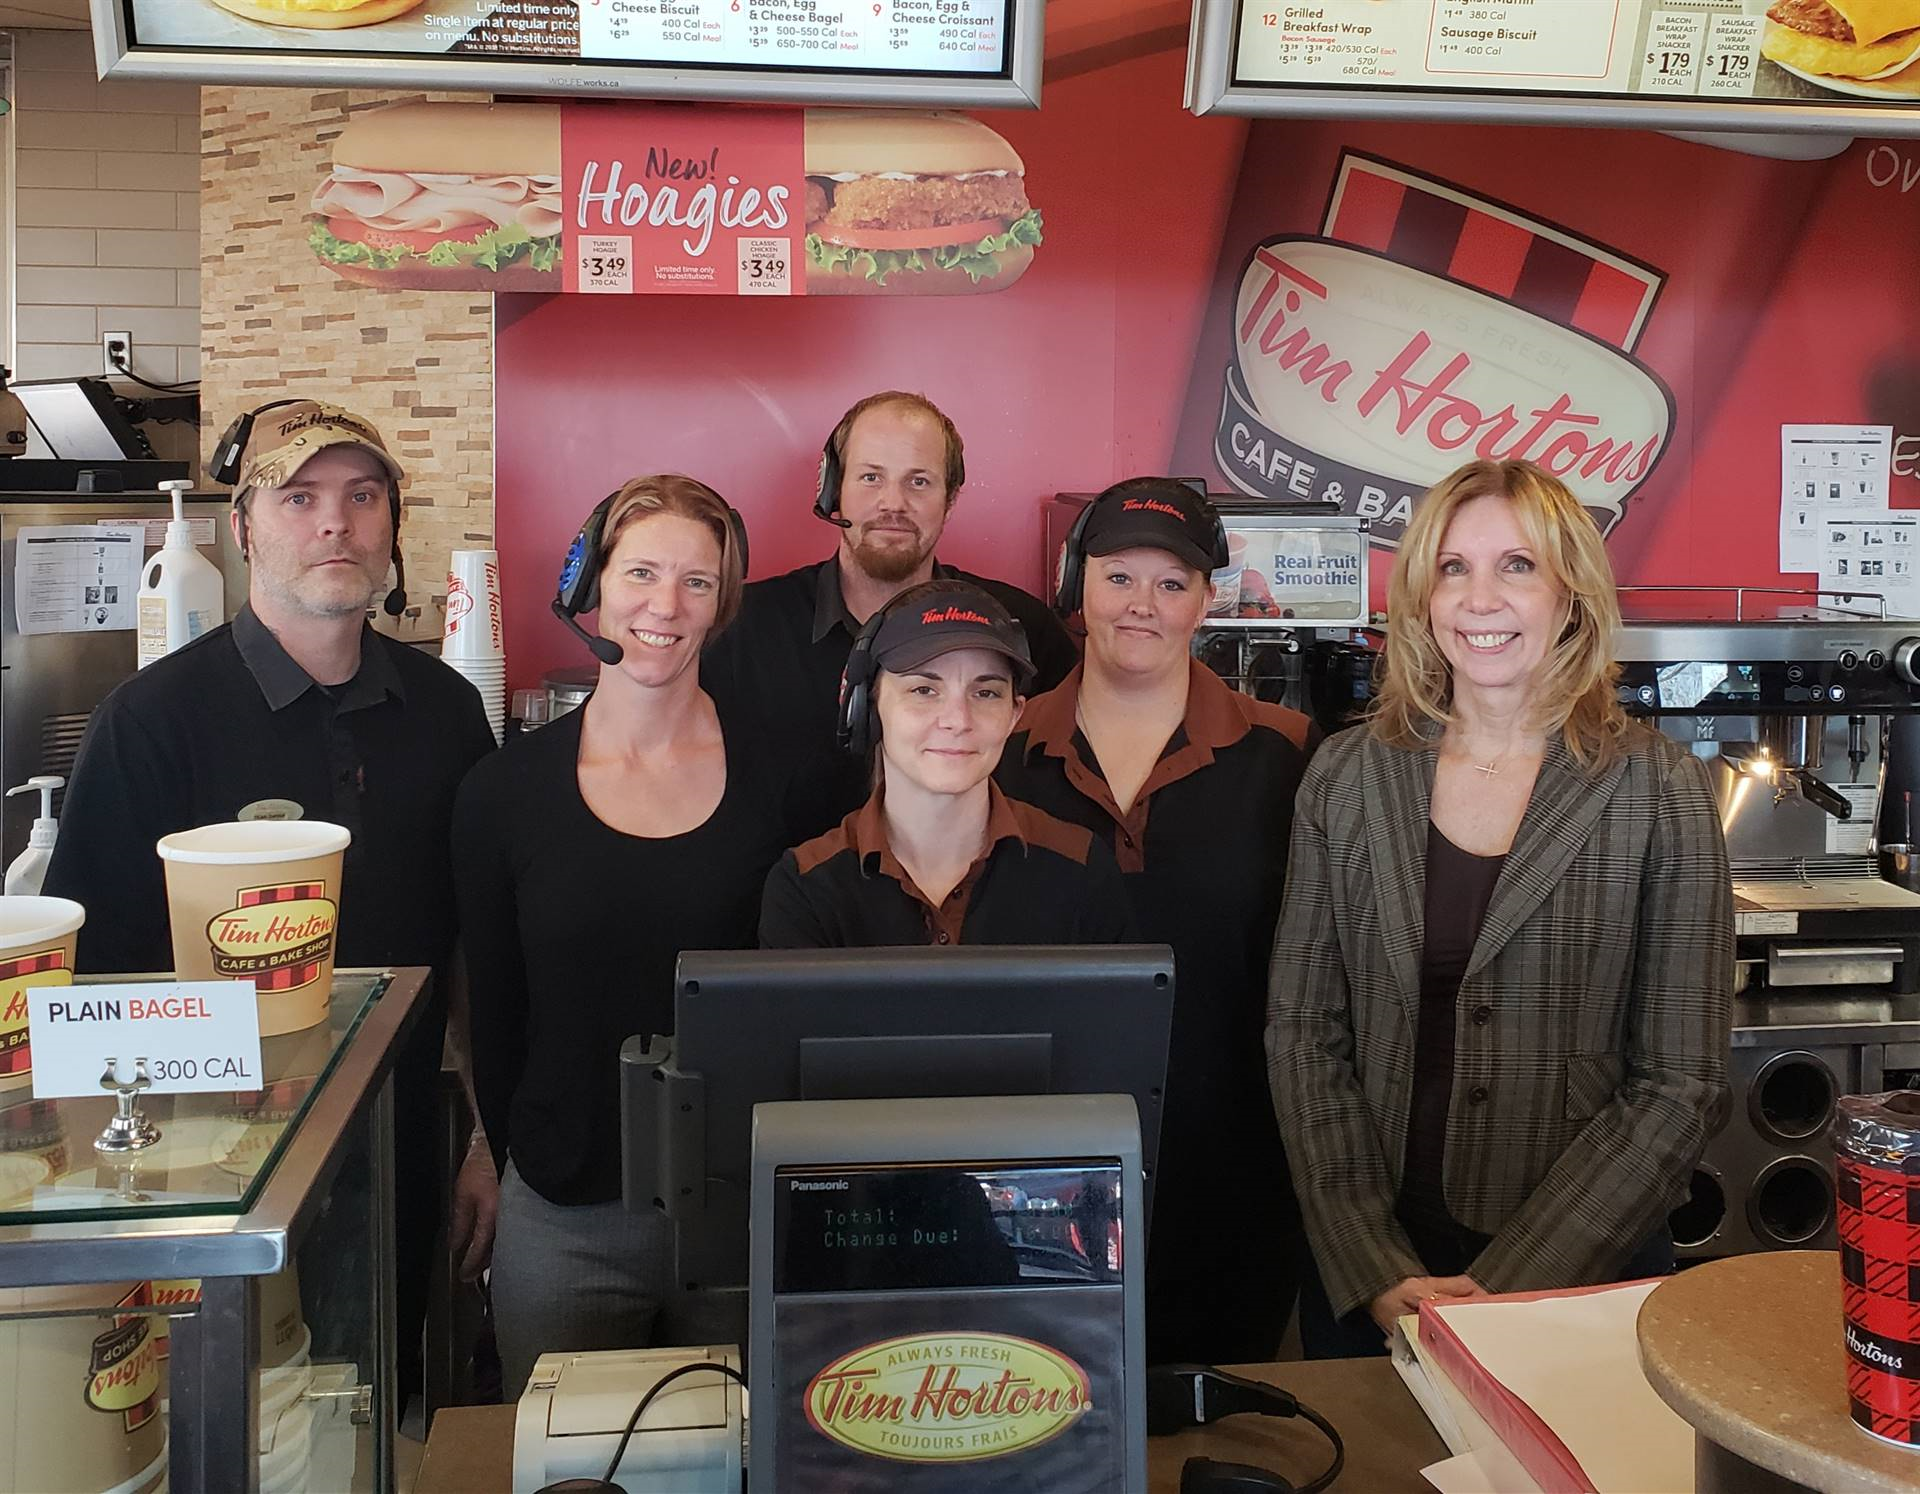 The Staff at Tim Horton's Buck Road is excited to help with Giving Tuesday